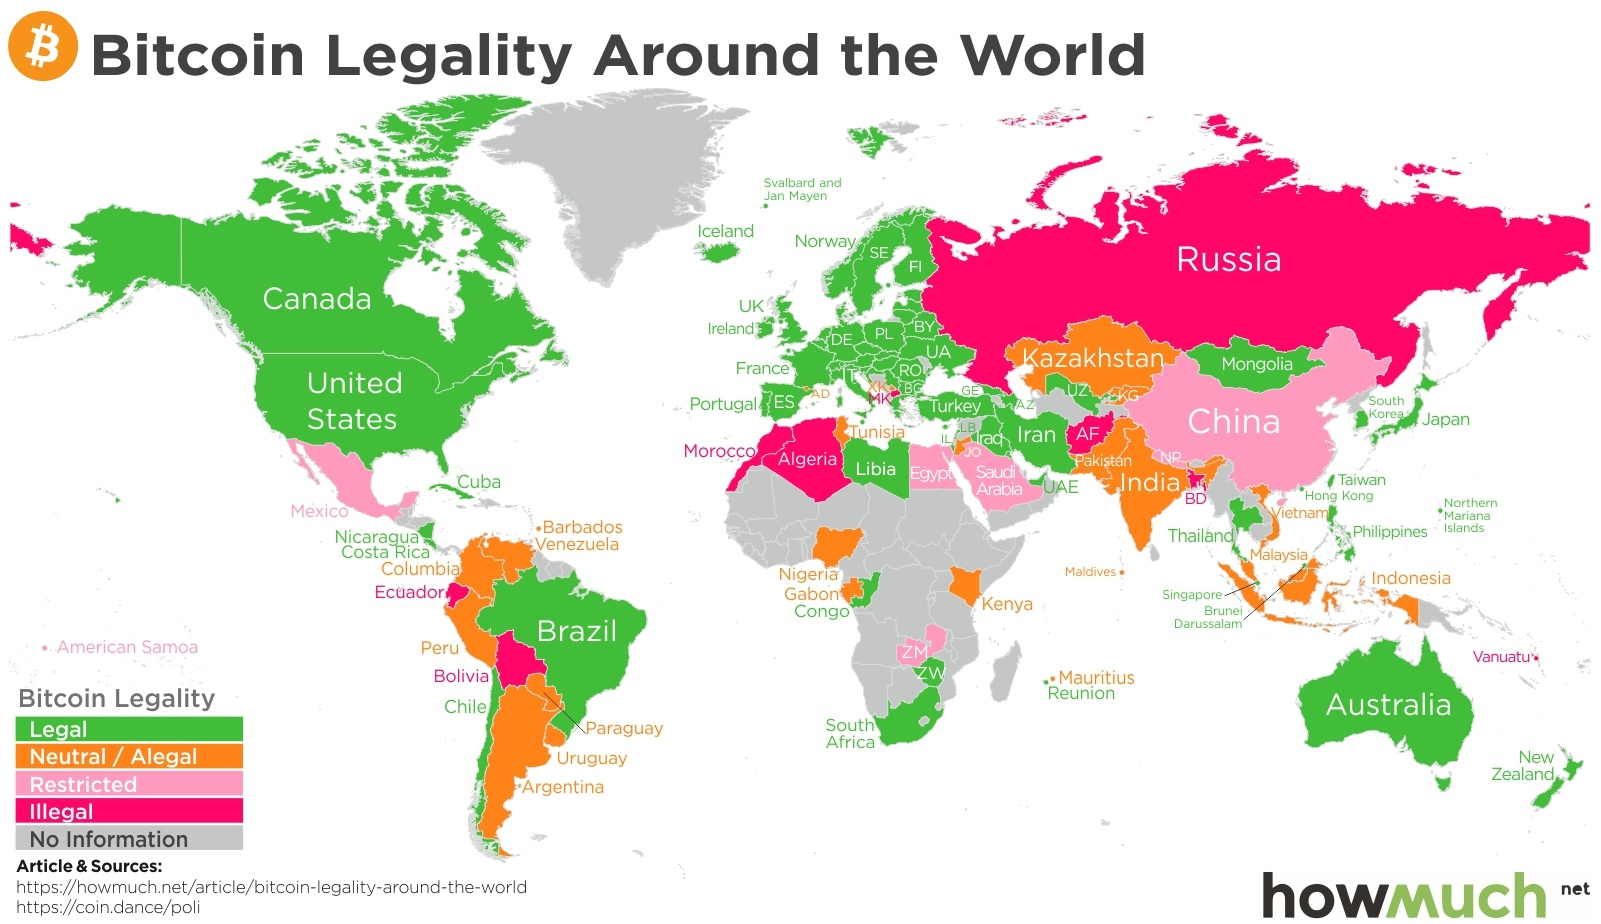 Legality of Bitcoin across the world